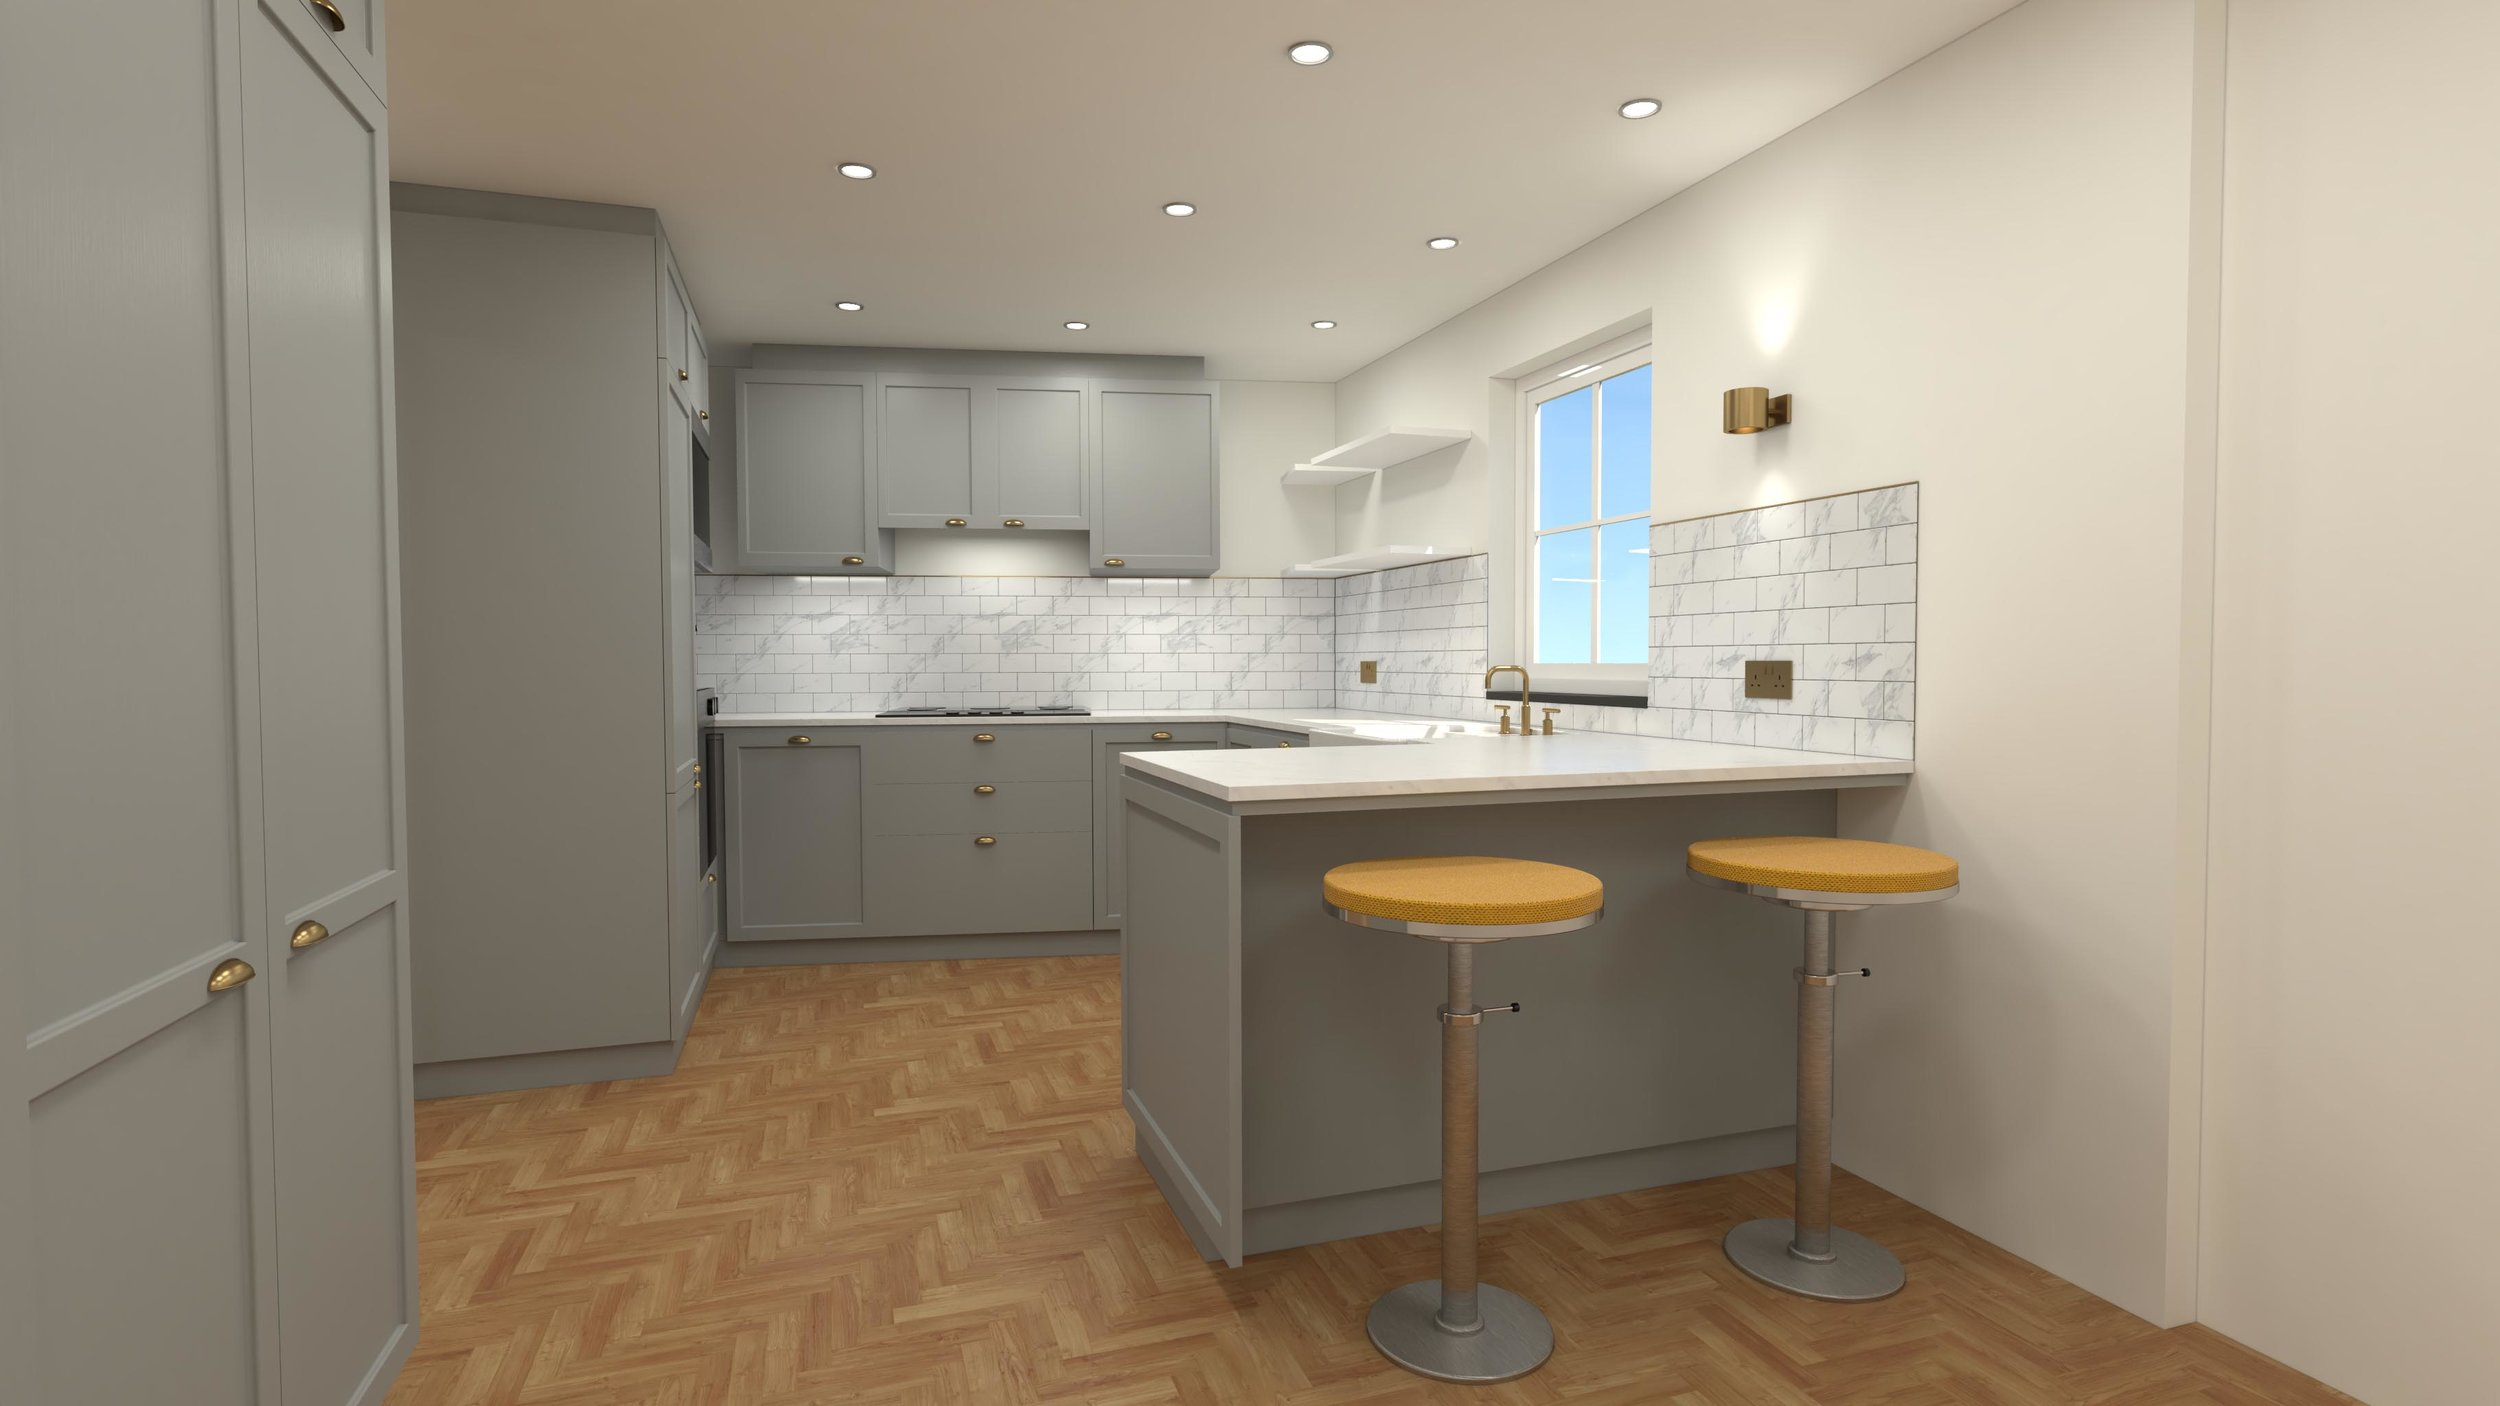 3D Kitchen Plan